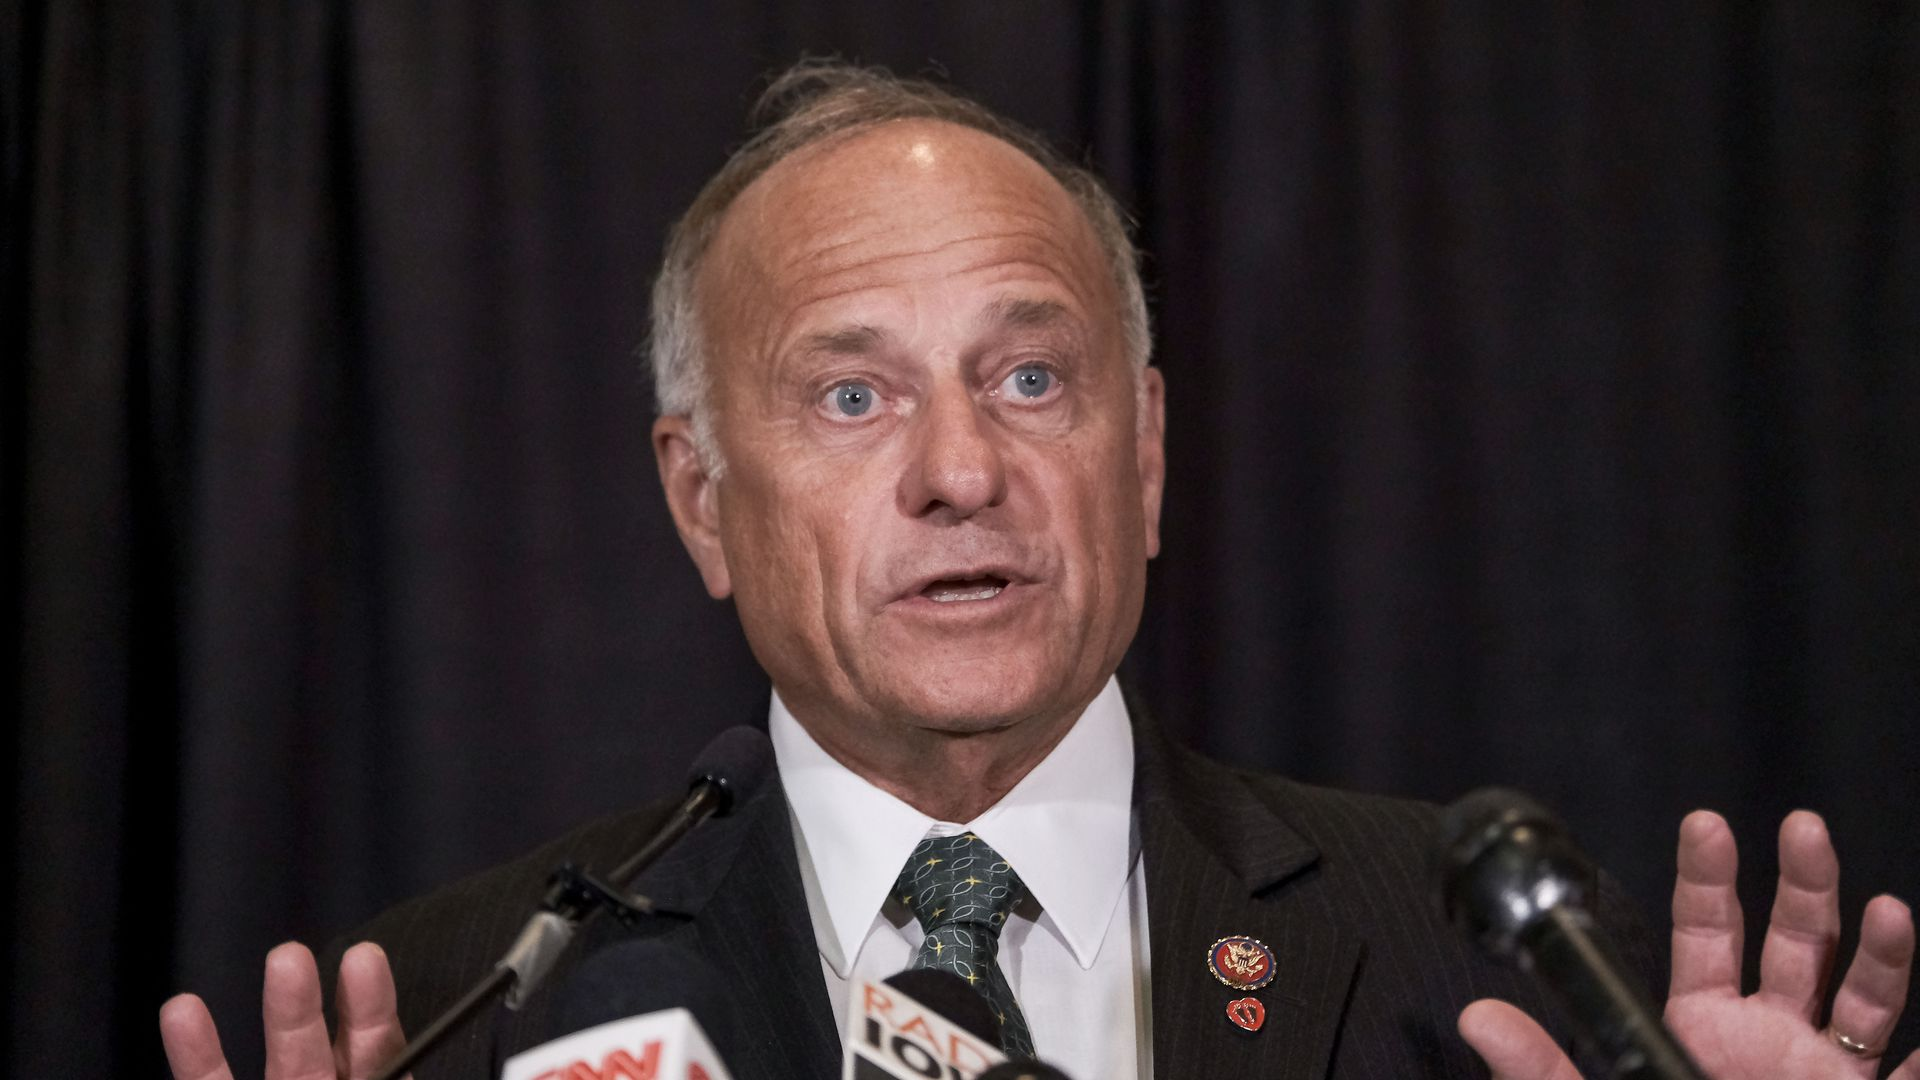 Rep. Steve King (R-IA) speaks at a press conference on abortion legislation on August 23